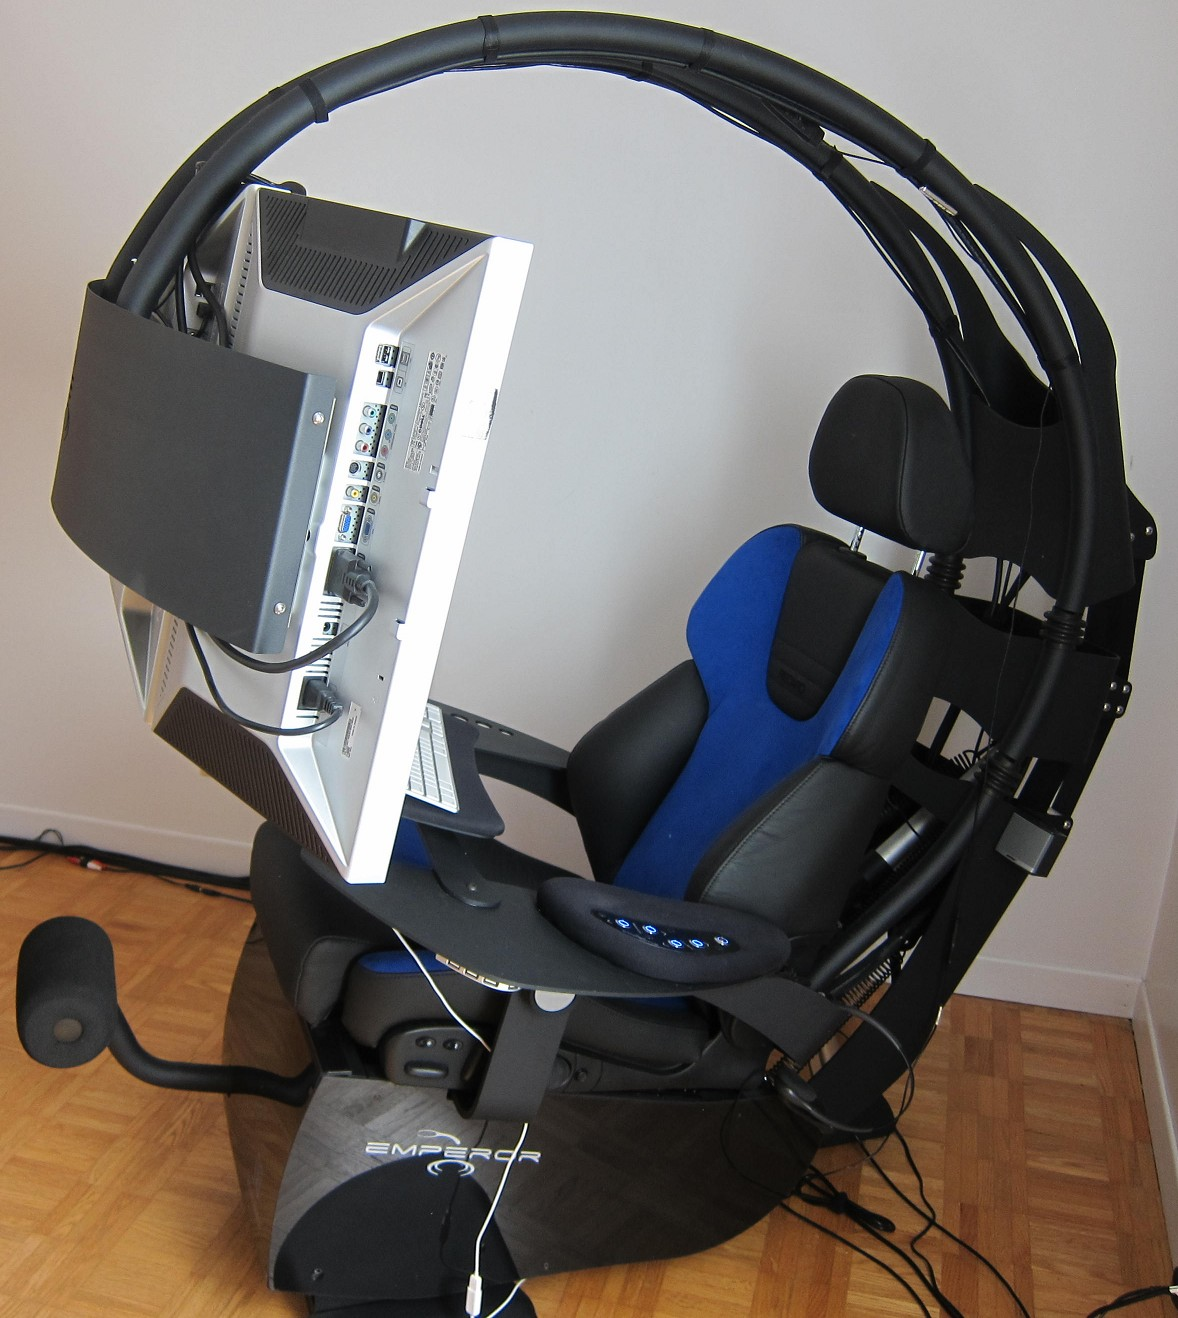 M a 39 s technology blog novelquest mwelab emperor 1510 review for Chaise gamer pc